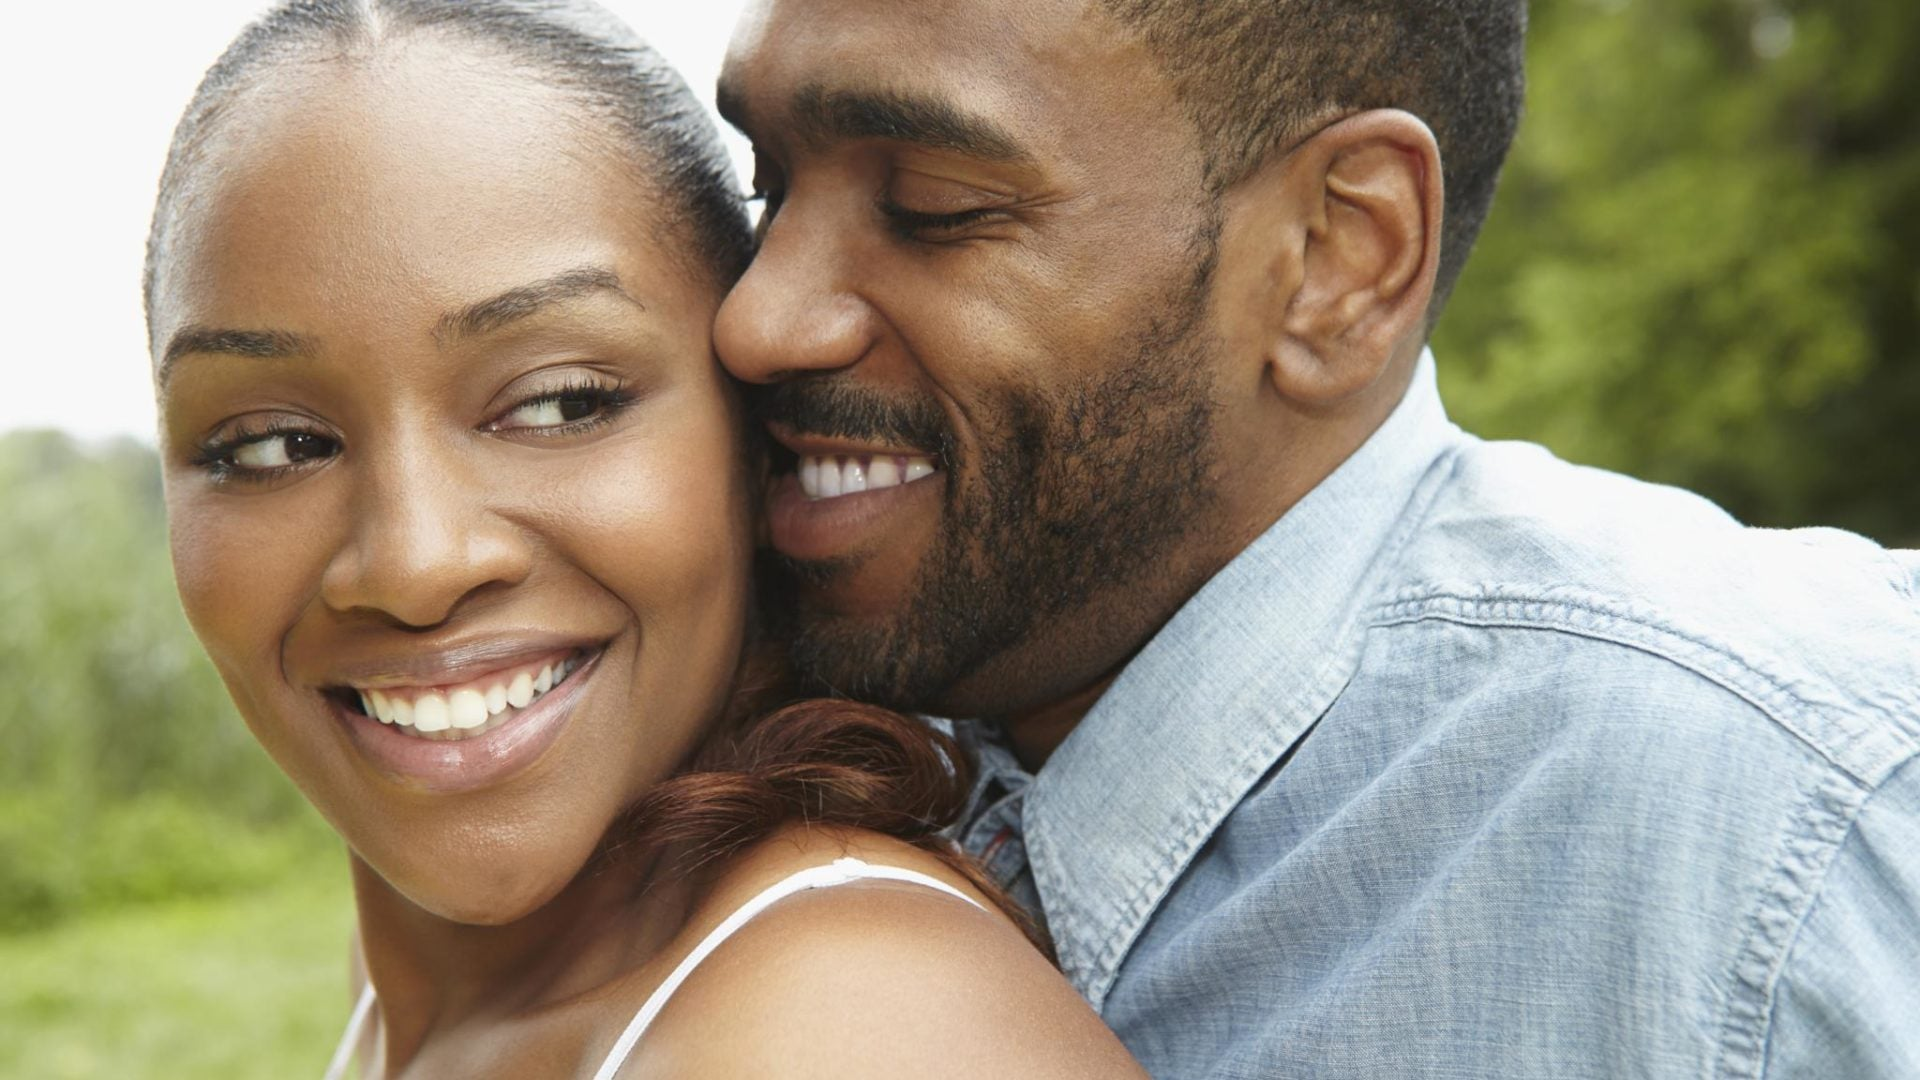 You Break Up, He Marries Her: What She's Doing That You Didn't - Essence